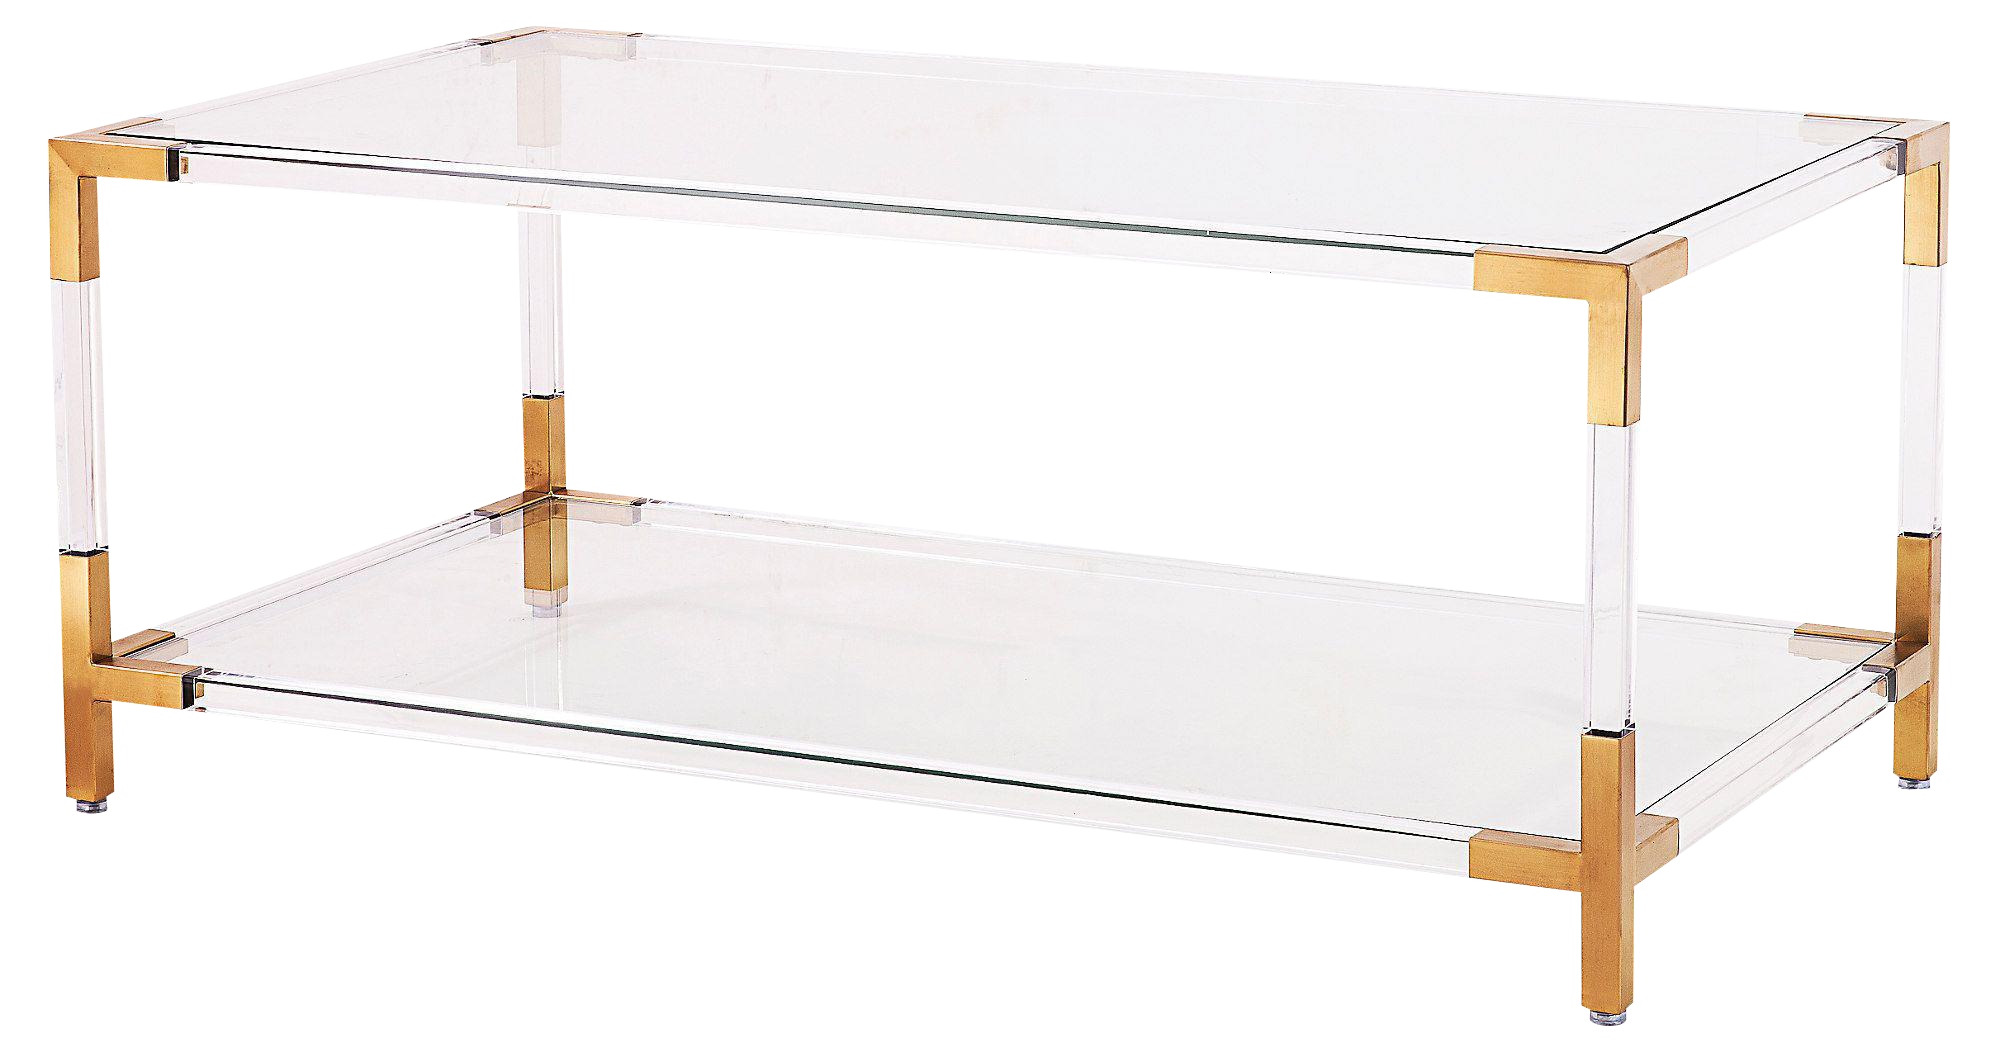 gold & acrylic frame coffee table with glass shelves | chairish